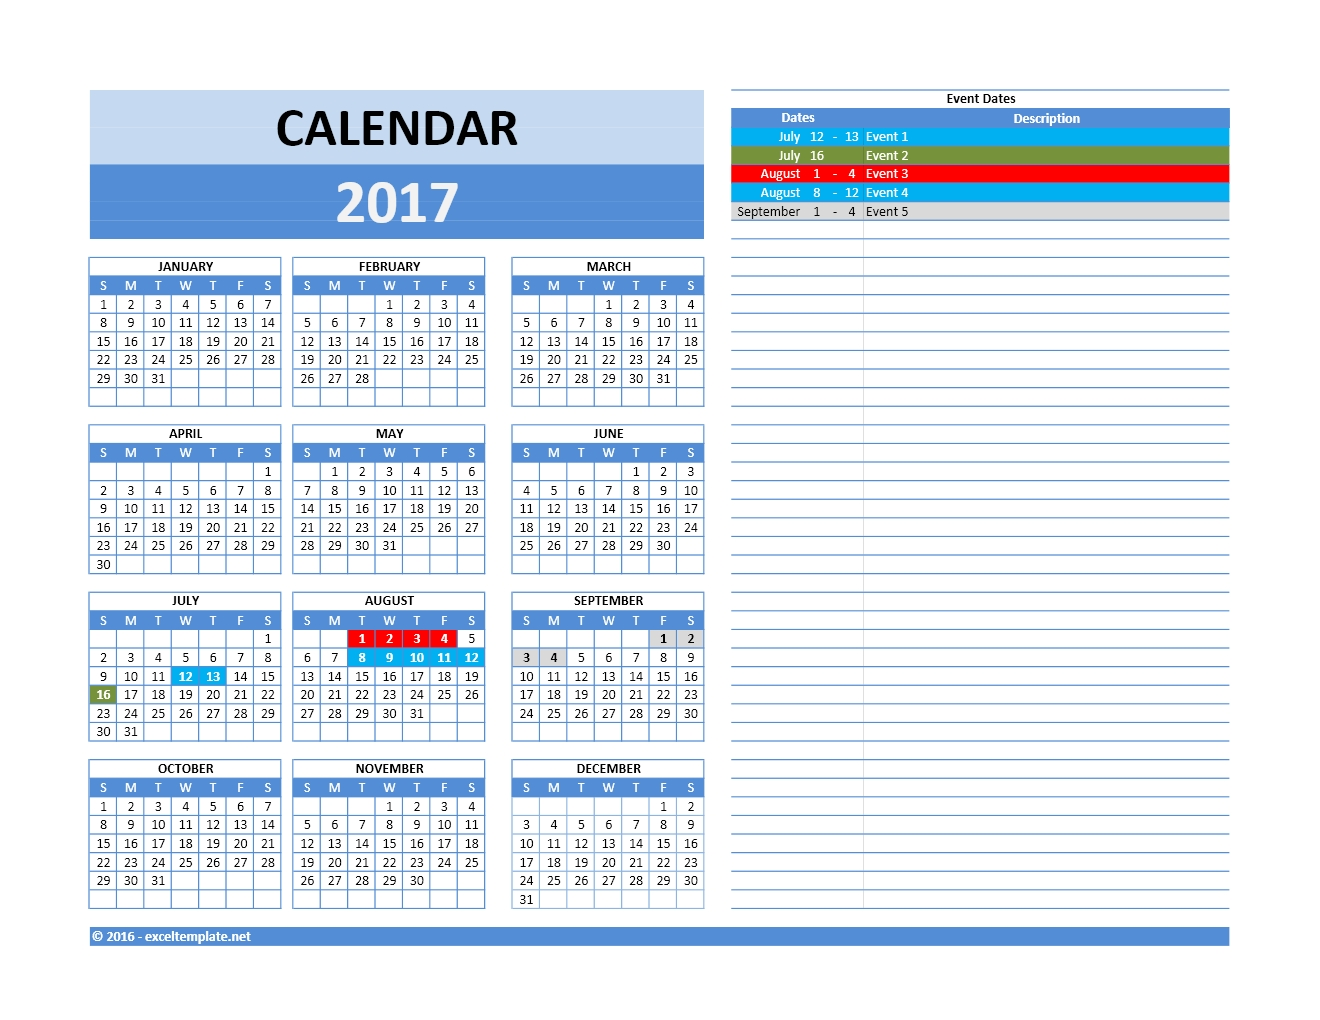 Calendar Planner Excel Template : And calendars excel templates